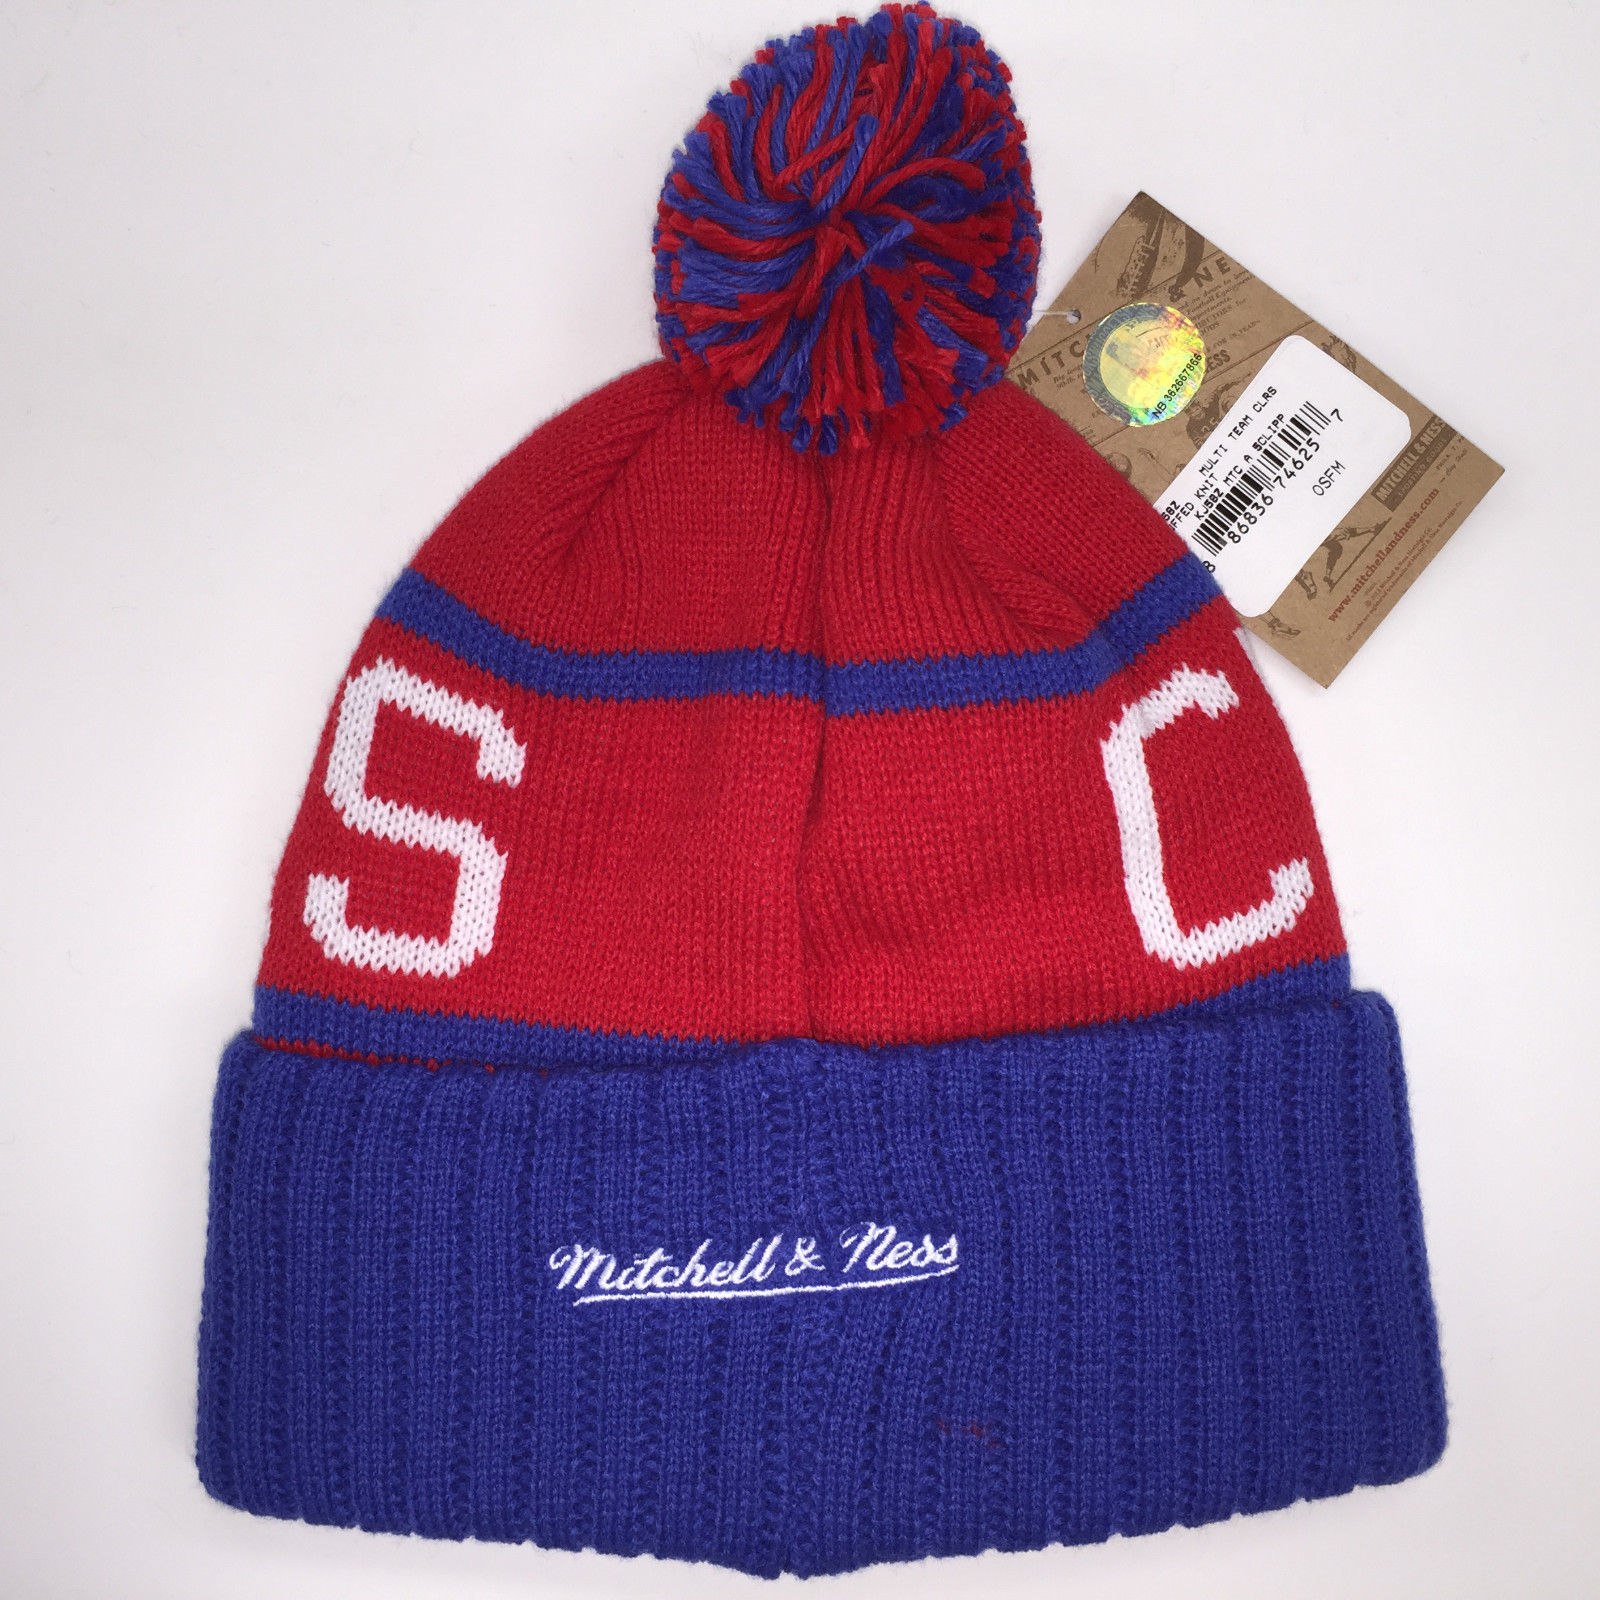 Mitchell & Ness NBA Los Angeles Clippers High 5 Cuffed Knit Beanie 10097